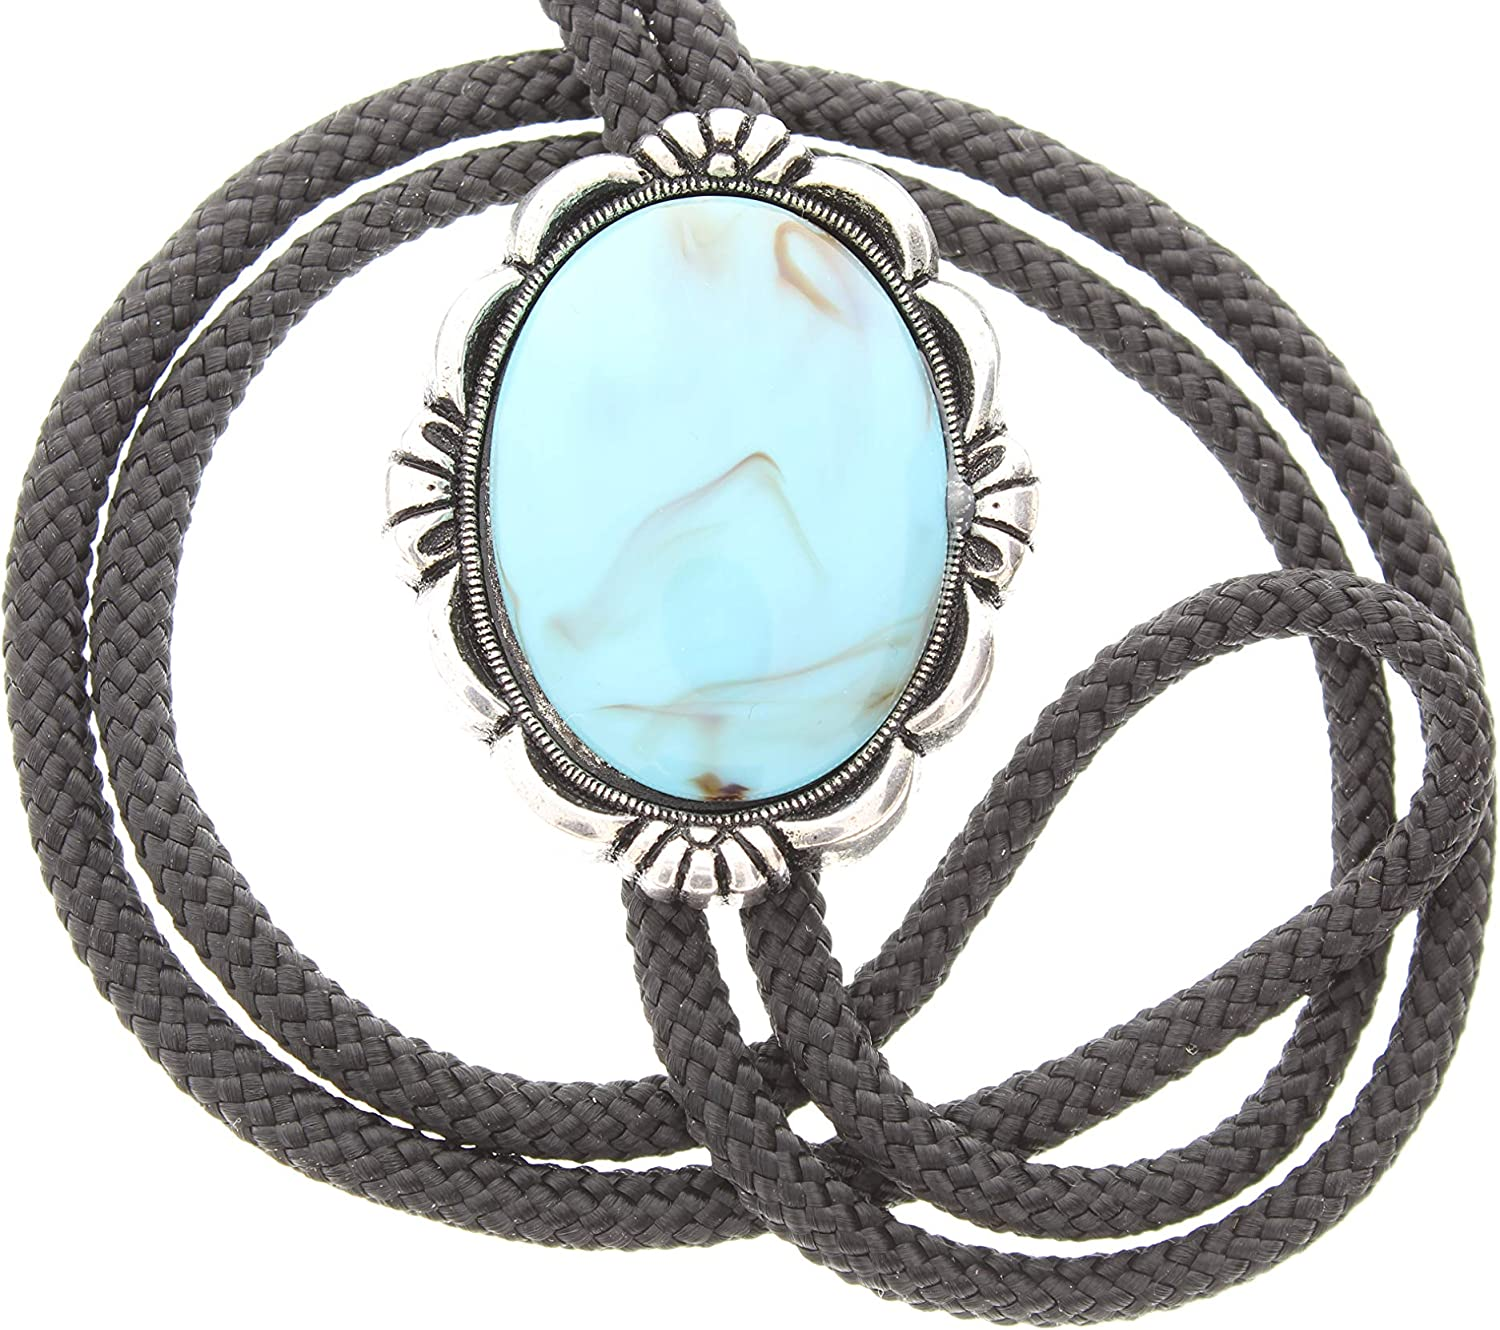 Turquoise Bolo (acrylic Stone) 40mm x 30mm Bolo Tie Necklace, sold by each